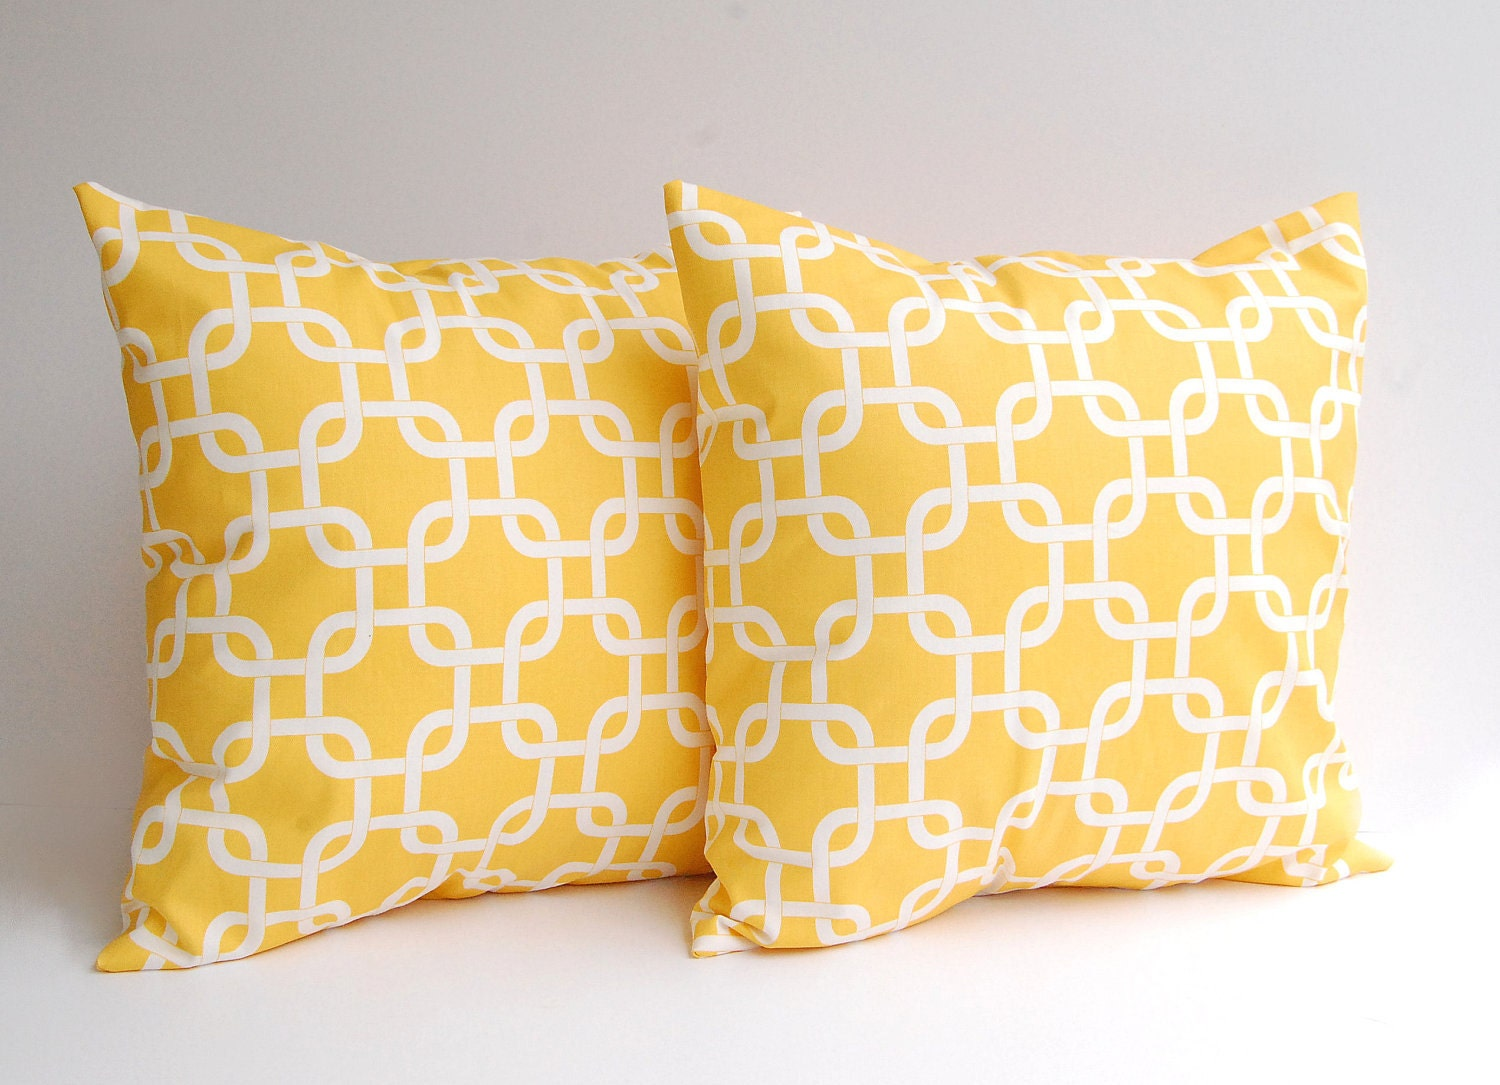 Etsy Throw Pillow Sets : Yellow throw pillows set of two 18 x 18 inches by ThePillowPeople